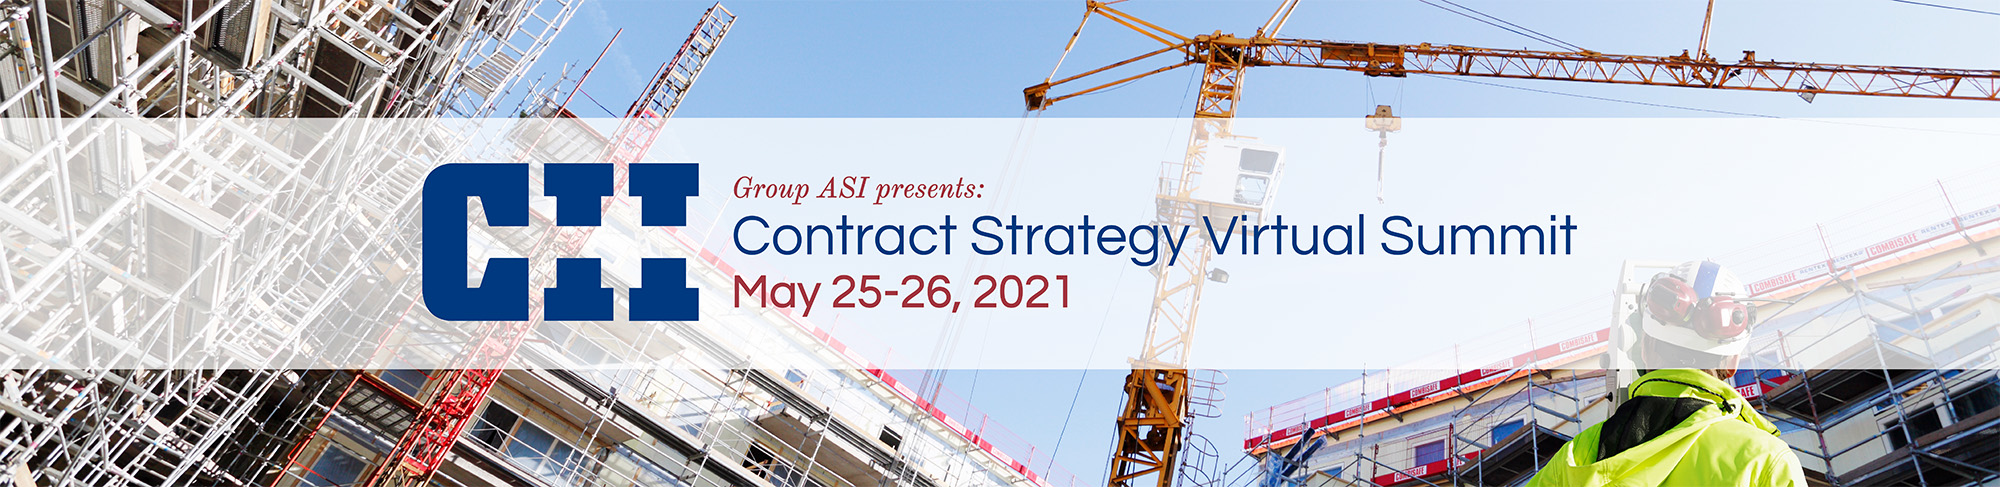 CII Contract Strategy Summit